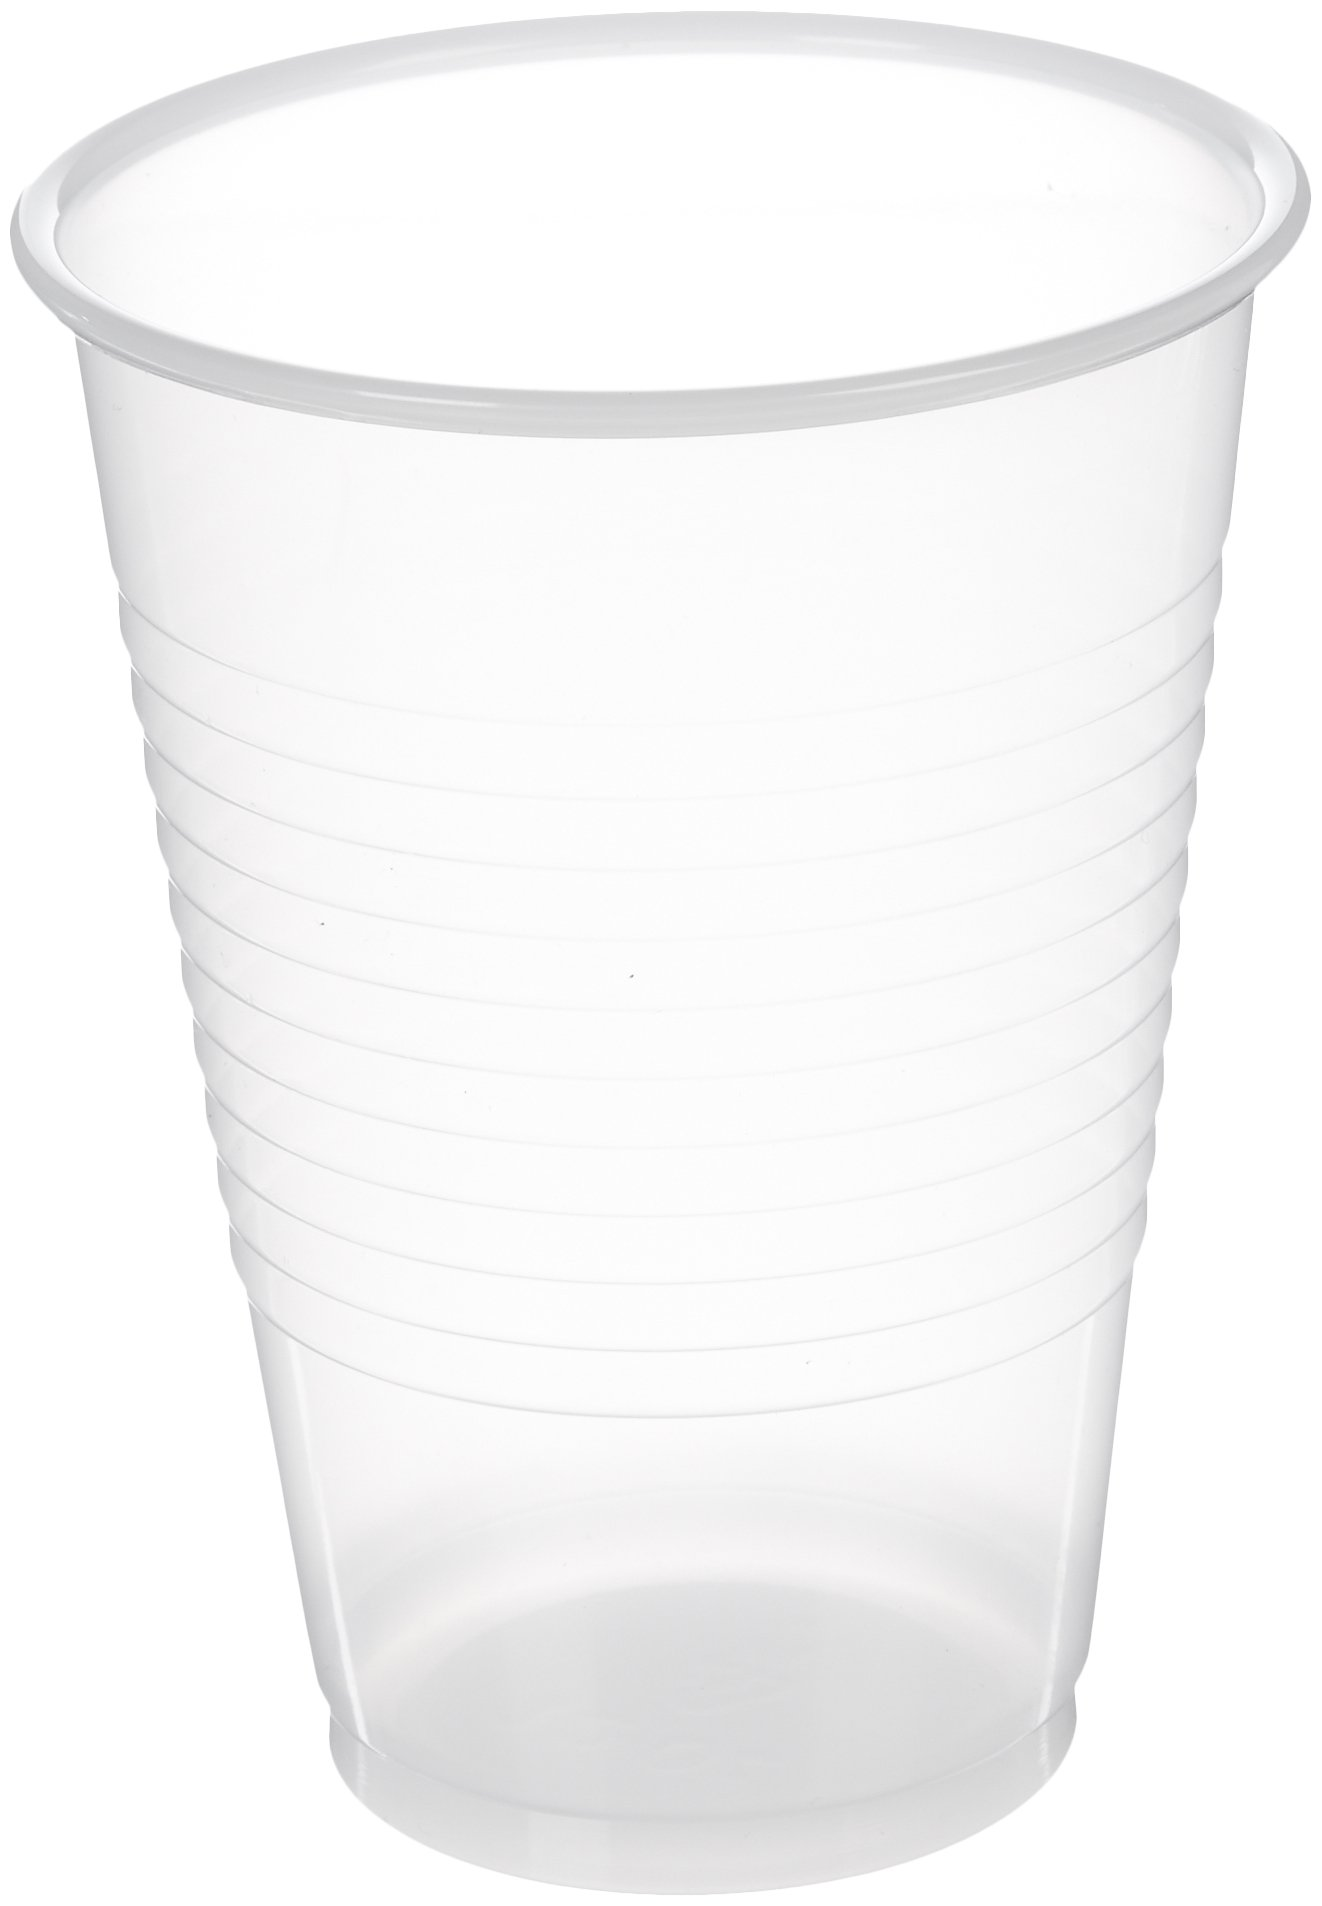 AmazonBasics Plastic Cups, 12 oz, Clear, 500-Count